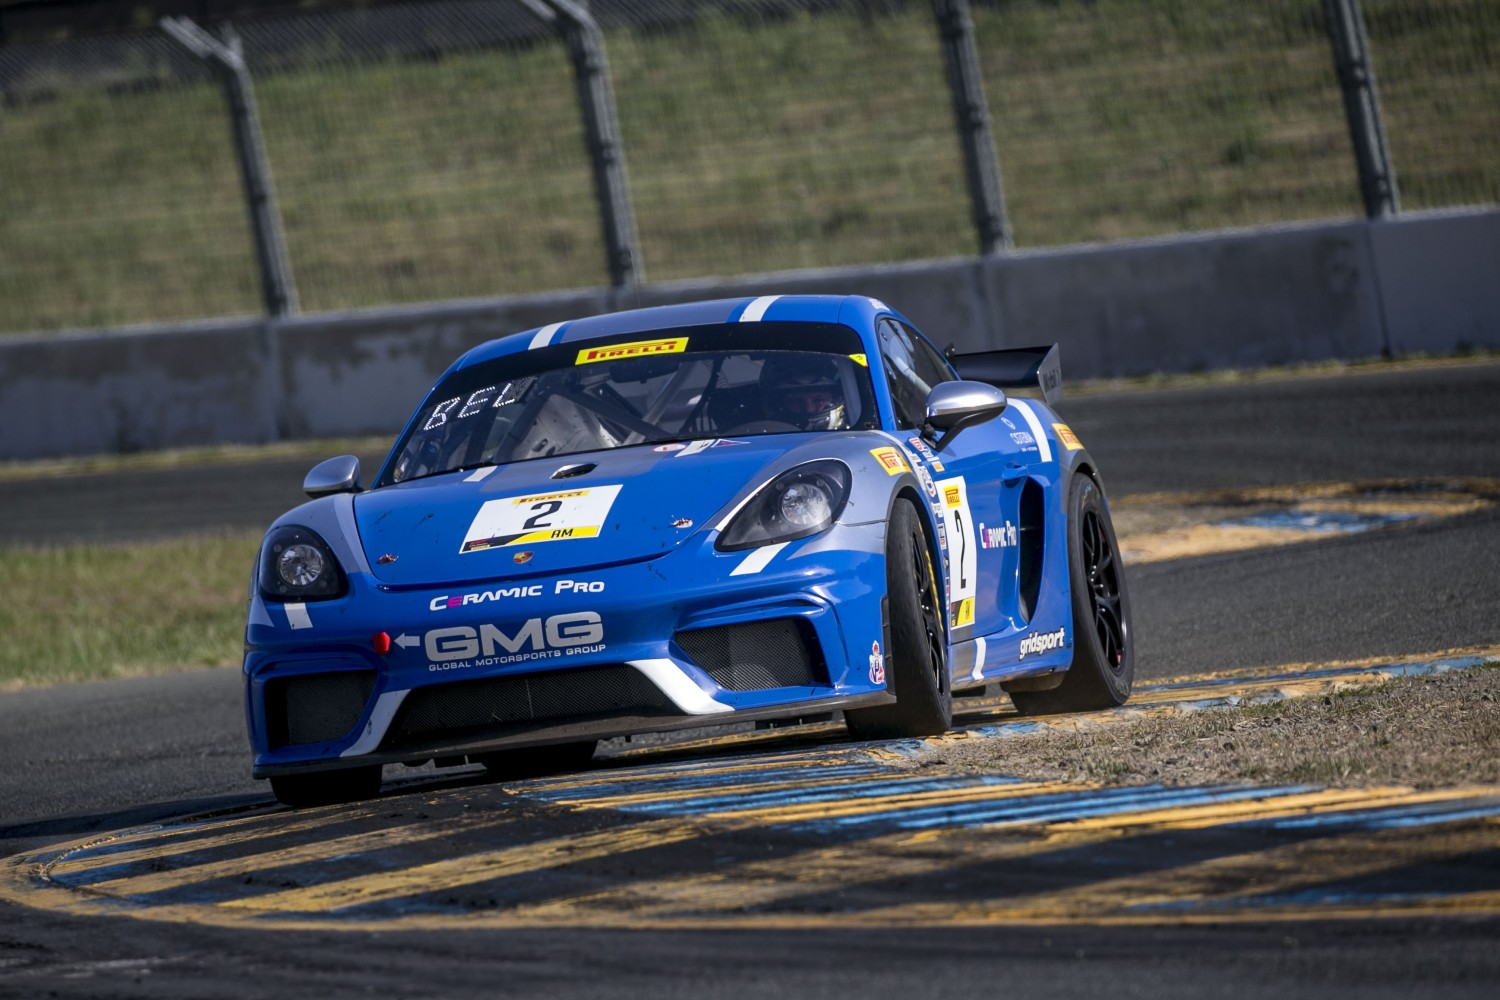 #2, GMG Racing, Porsche 718 Cayman CS MR, Jason Bell, Highway Systems, Osteria Kitchen + Bar, Gridsport, Franklin, SRO at Sonoma Raceway, Sonoma CA  | Brian Cleary/SRO